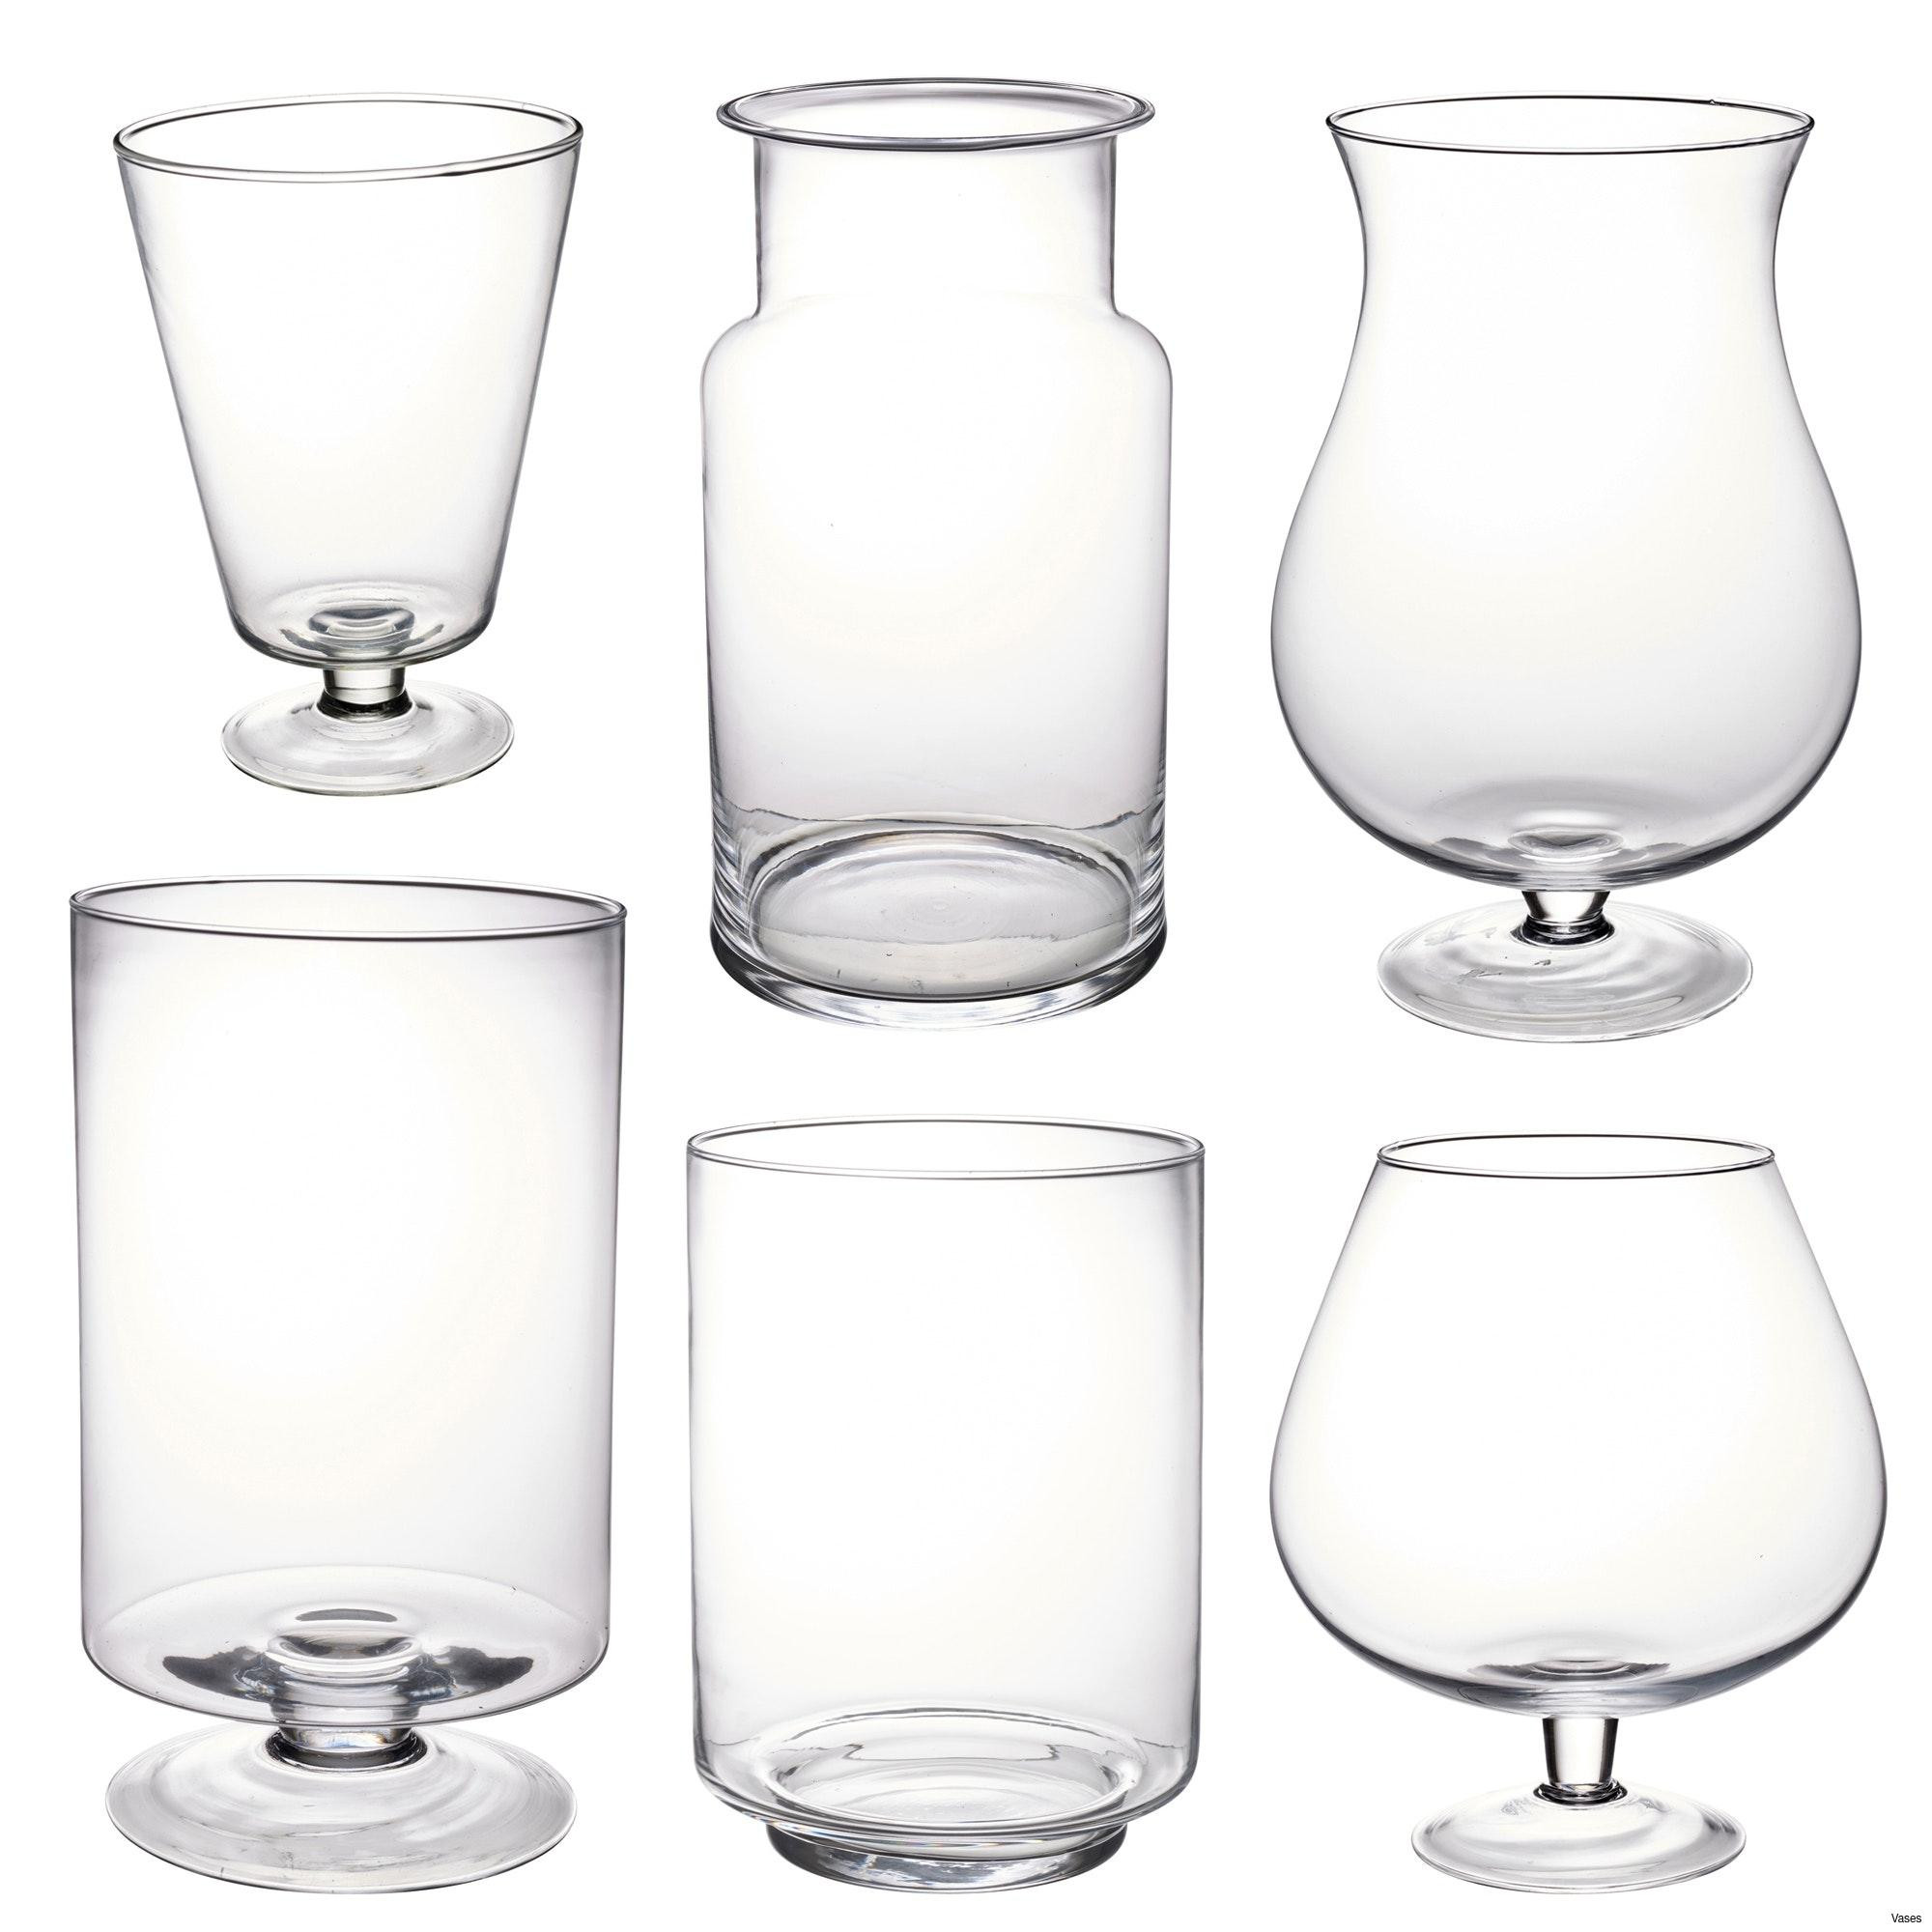 discount glass vases wholesale of unique dining room accent with reference to living room small vases with unique dining room accent with reference to living room small vases beautiful cheap glass vases 1h a